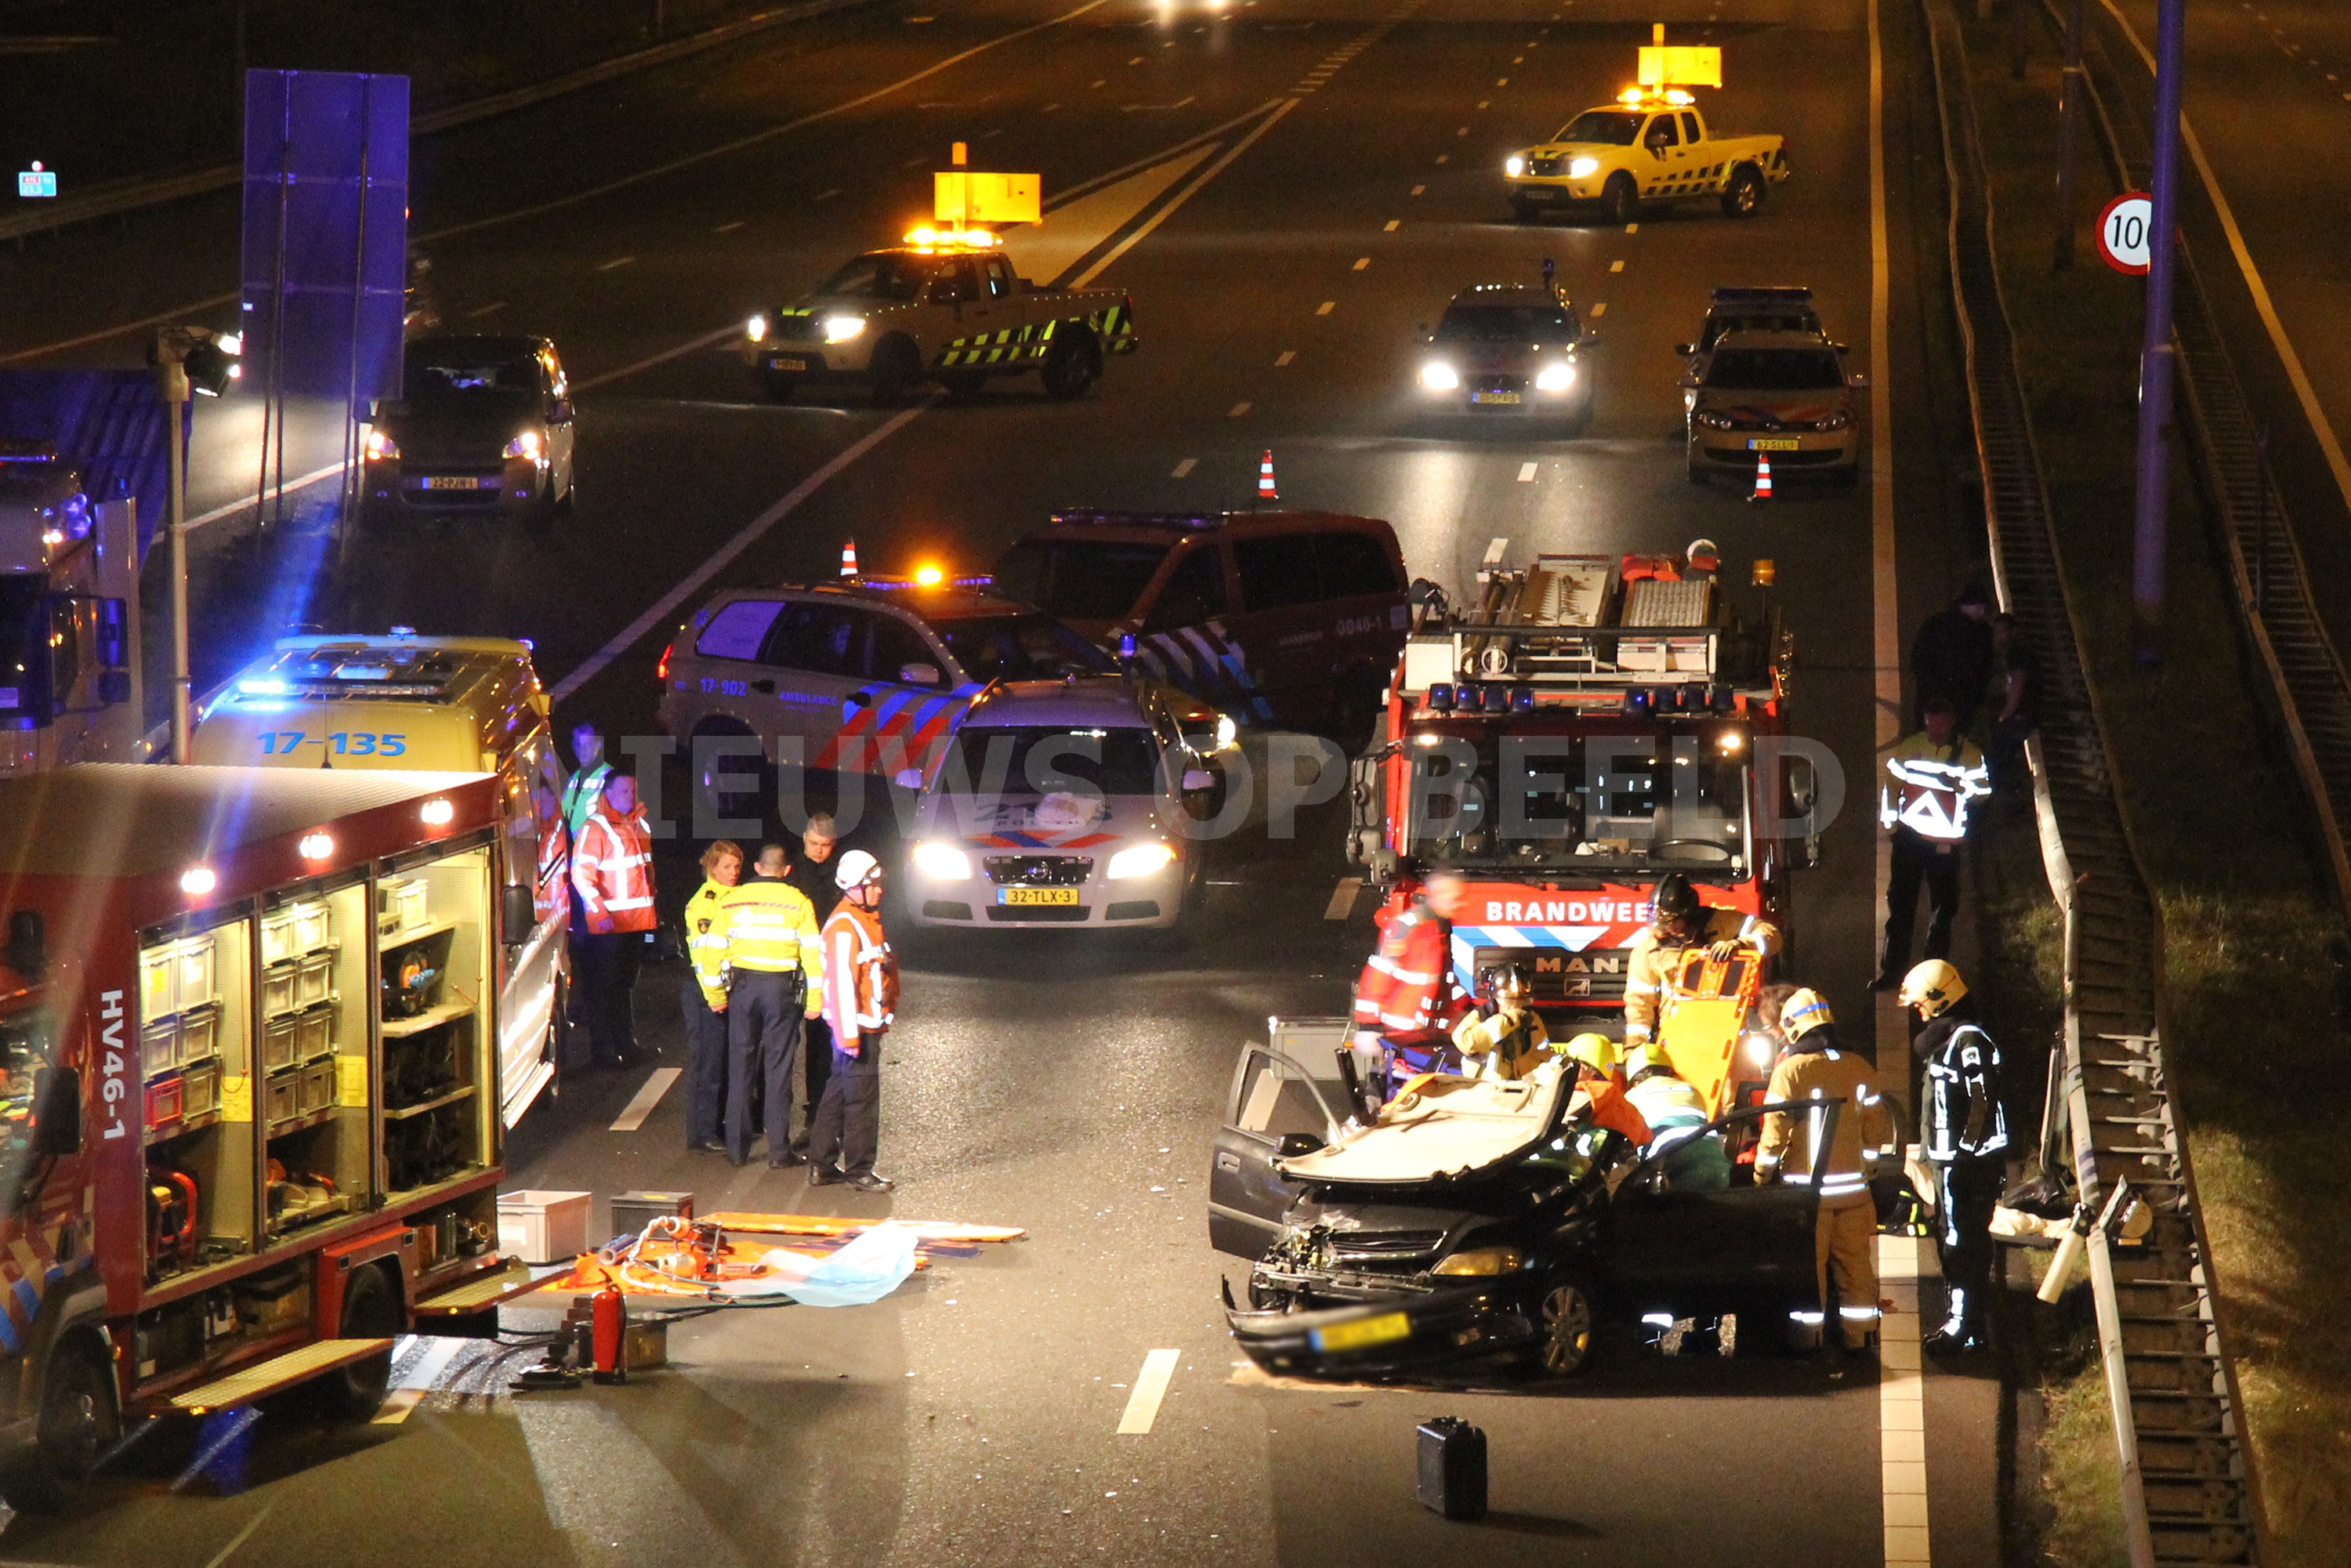 Beknelling na ongeval op A16 Rotterdam [VIDEO]